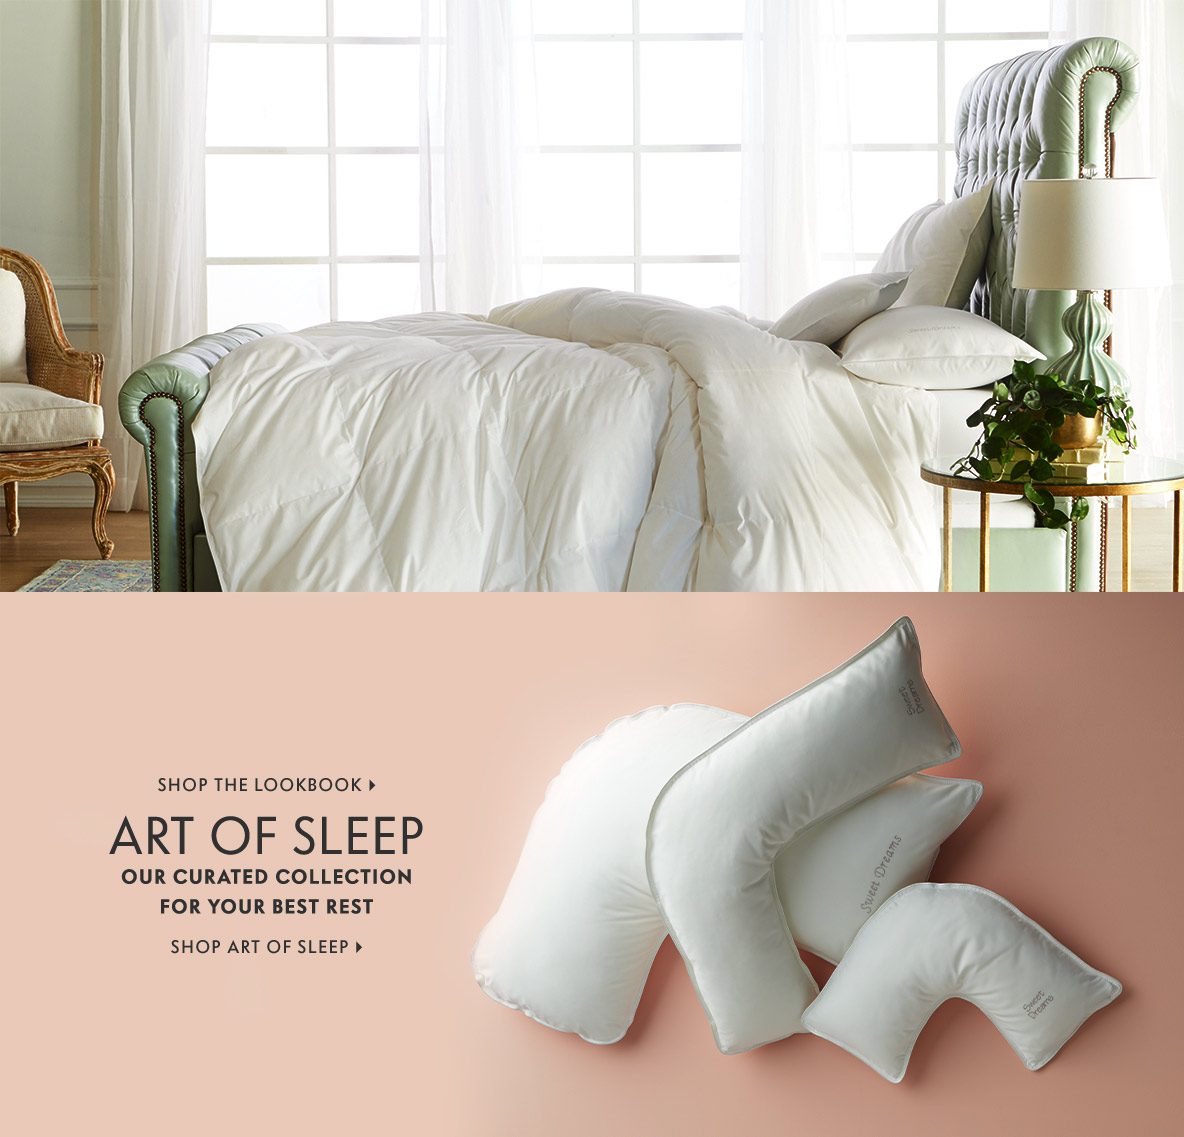 Art of Sleep Our curated collection for your best rest